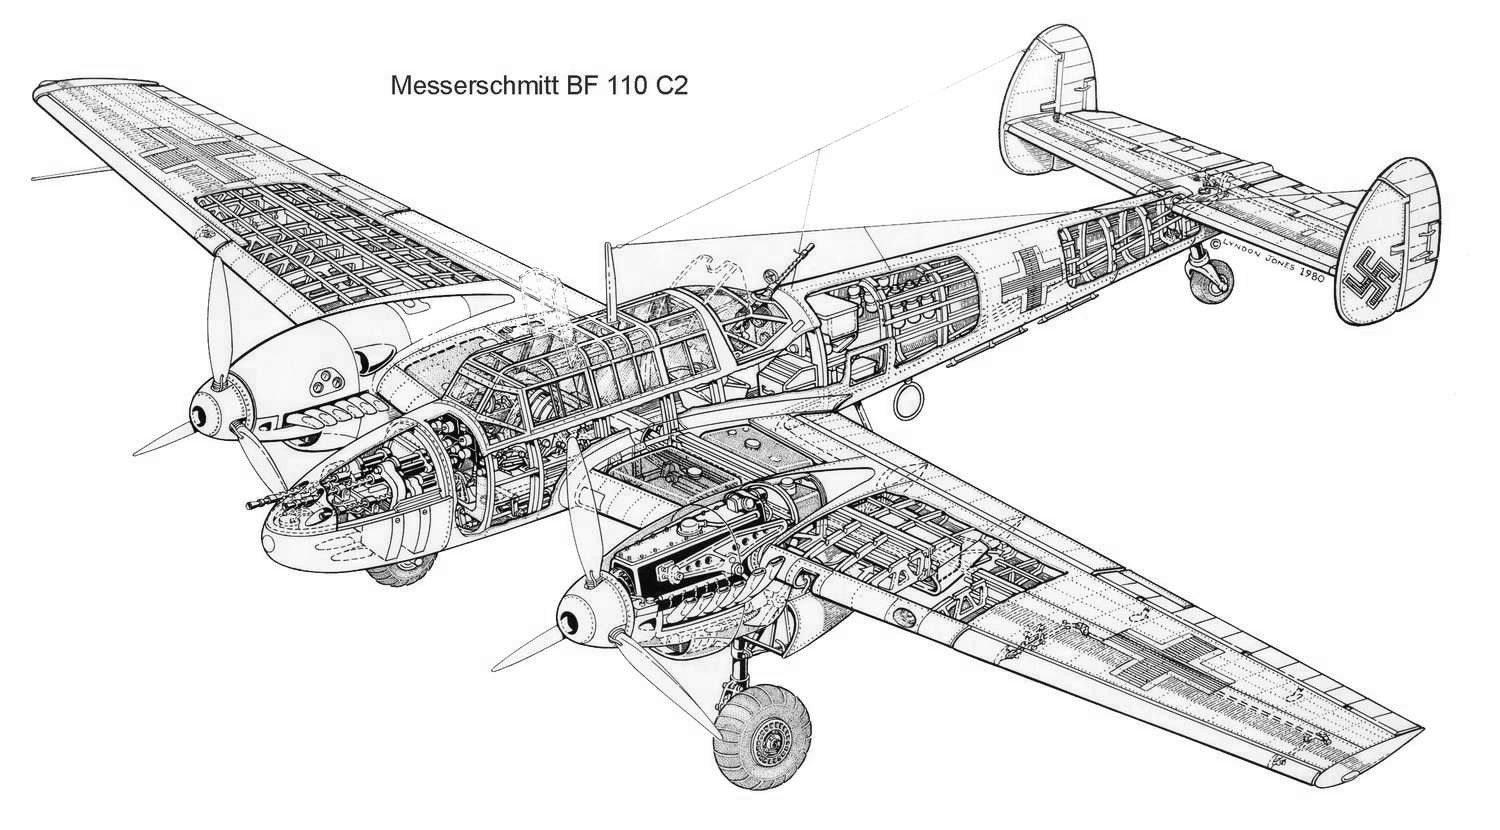 Pin By Ignacy Sk Adowski On Messerschmitt Bf 110